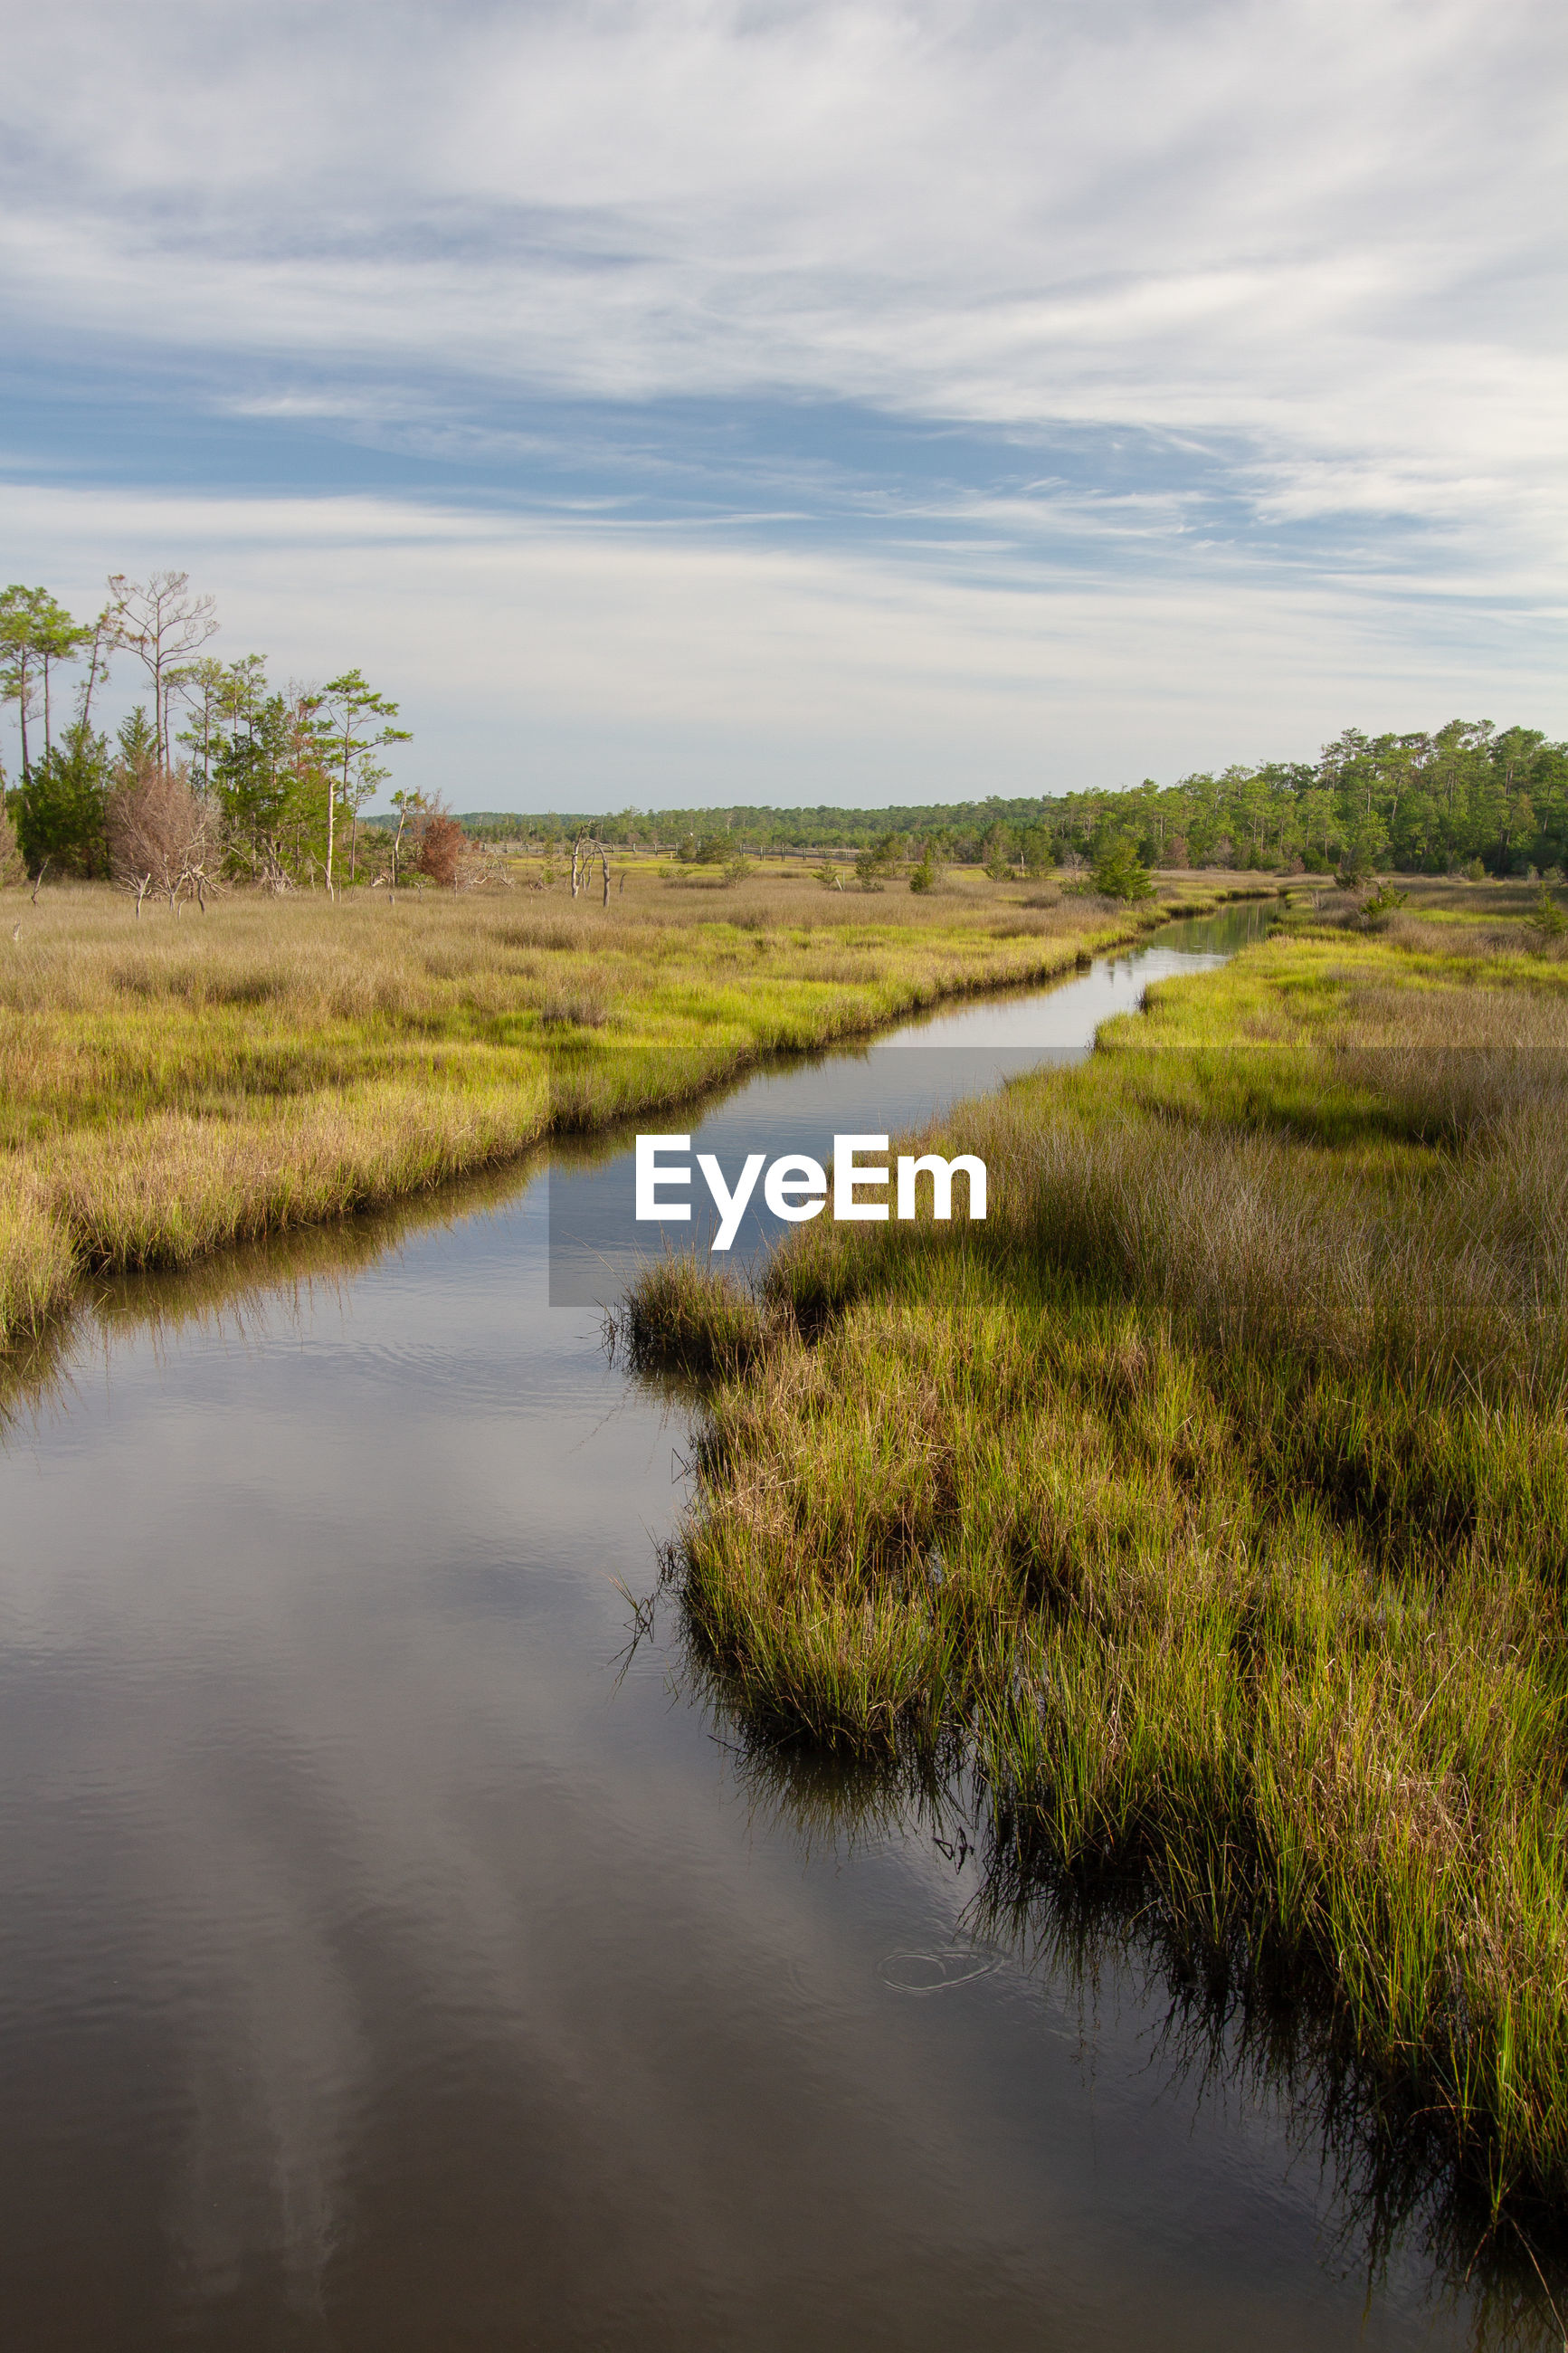 Scenic view of mash and wetlands. croatan national forest, outer banks, north carolina